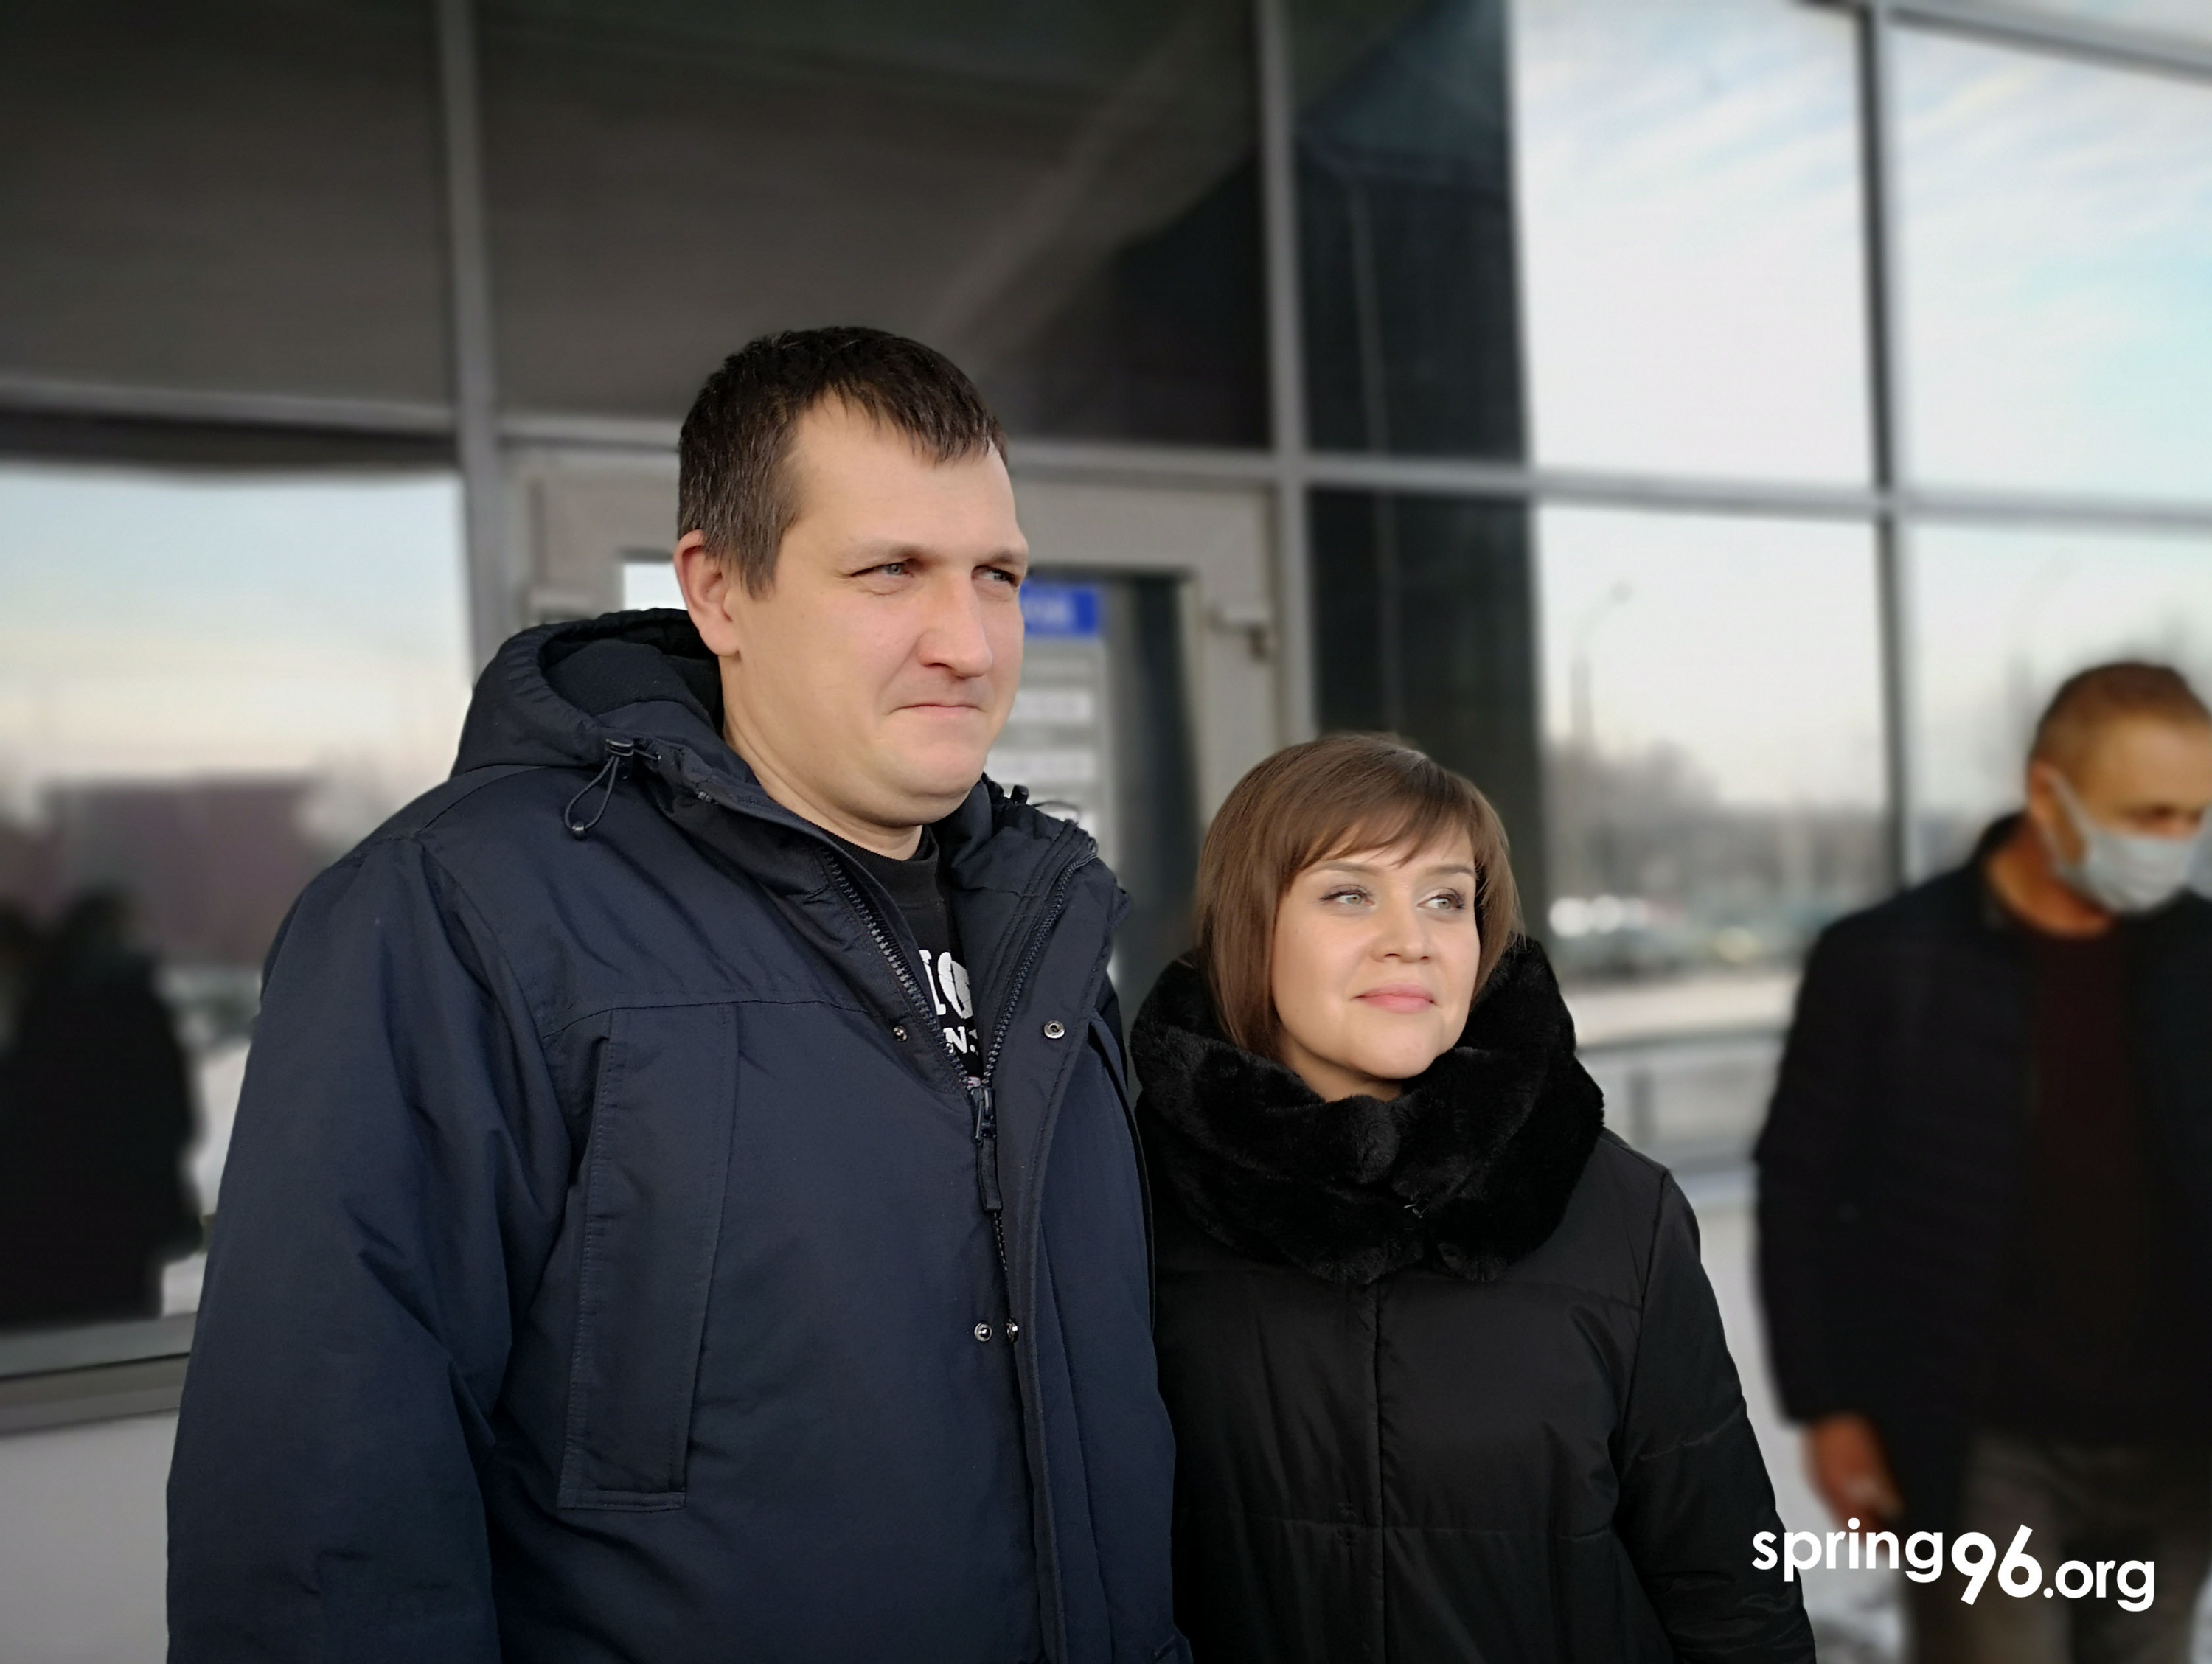 Dzmitry Kulakouski next to his wife after the trial on January 22, 2021